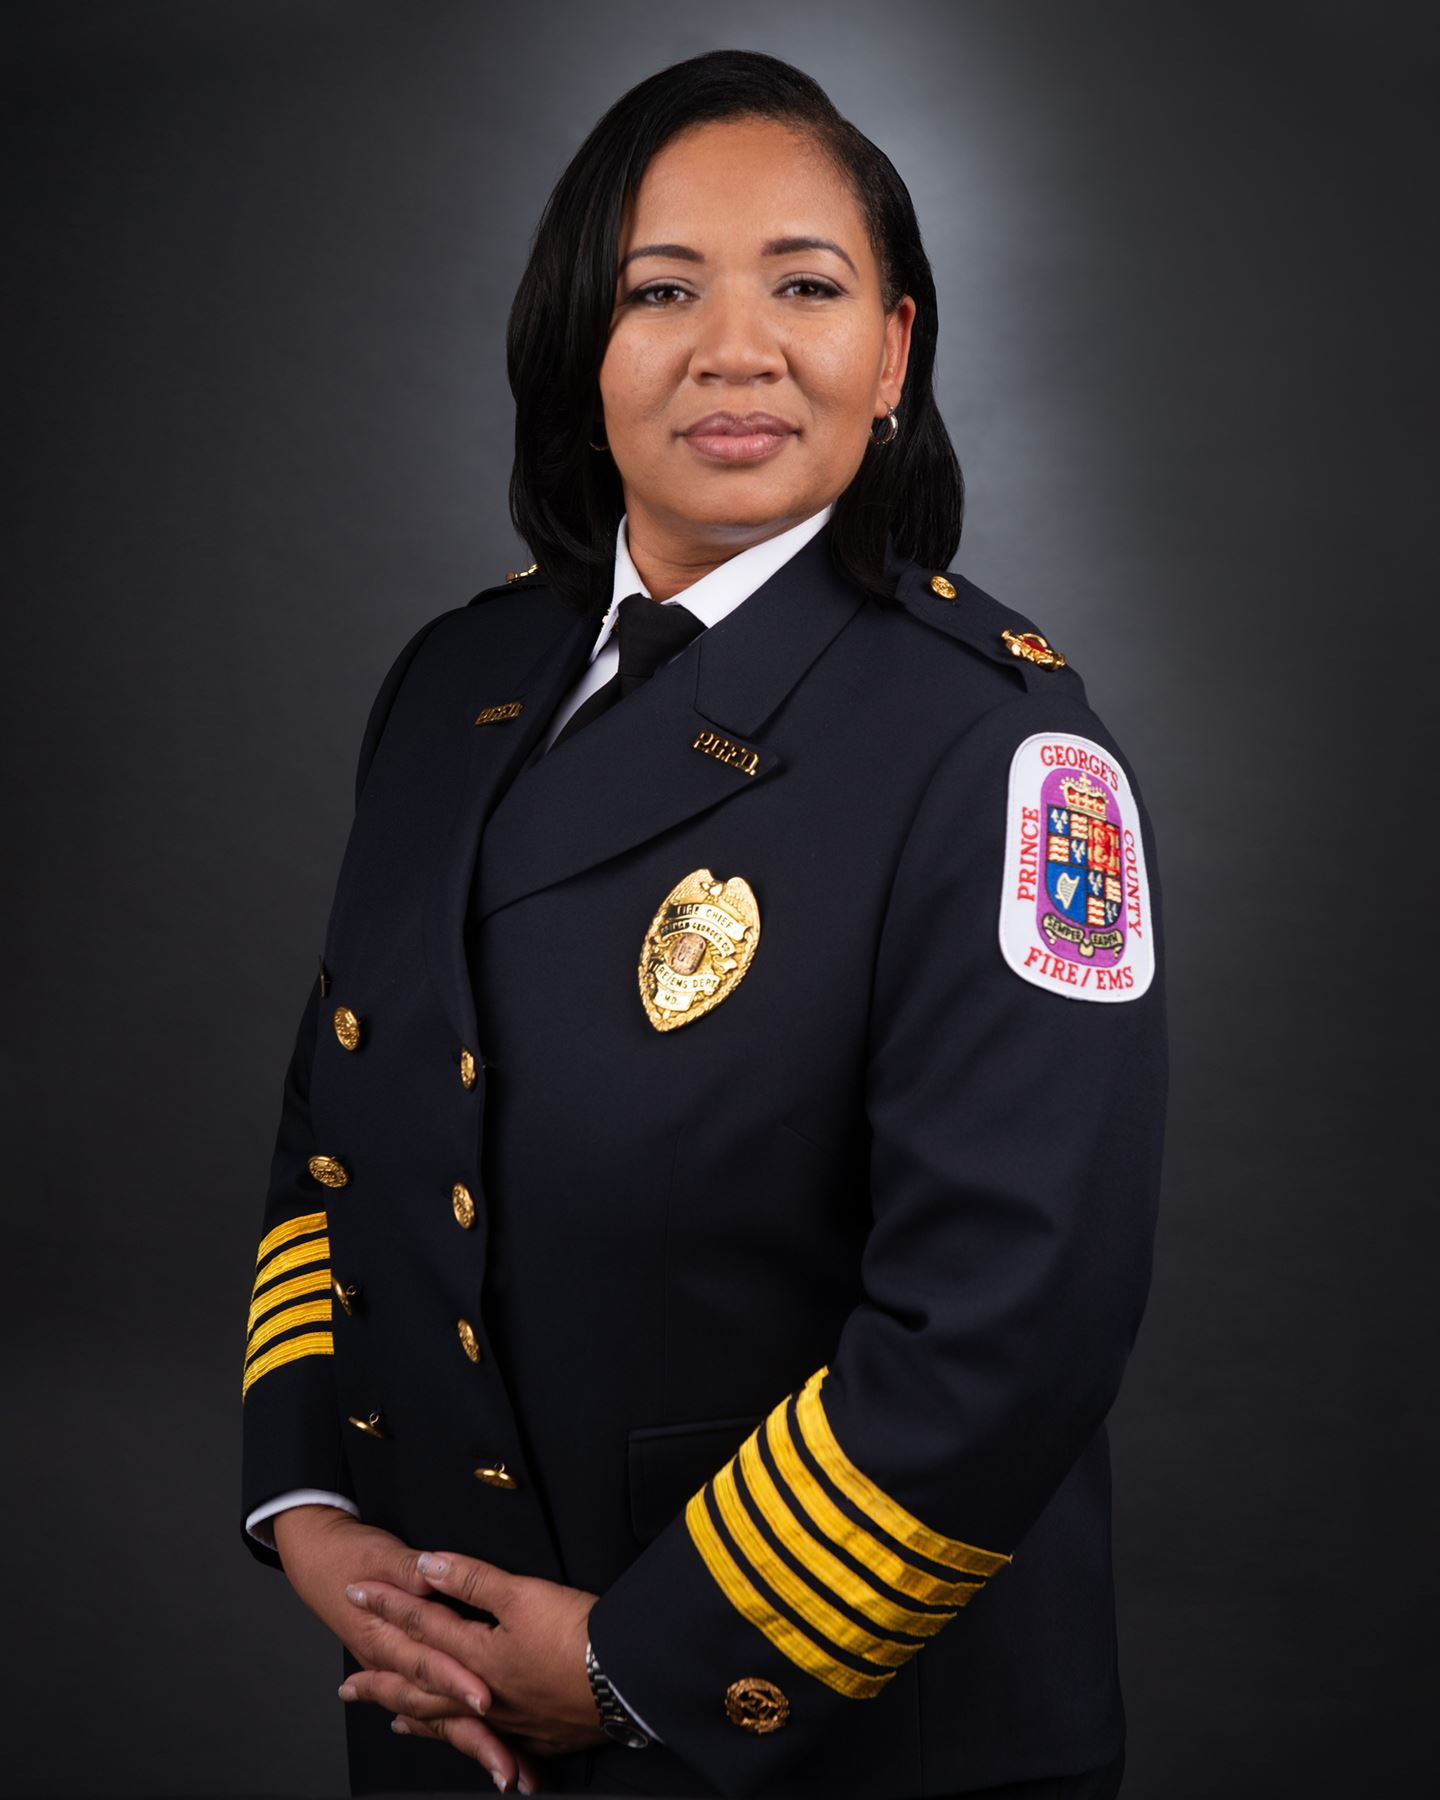 Fire Chief Tiffany Green